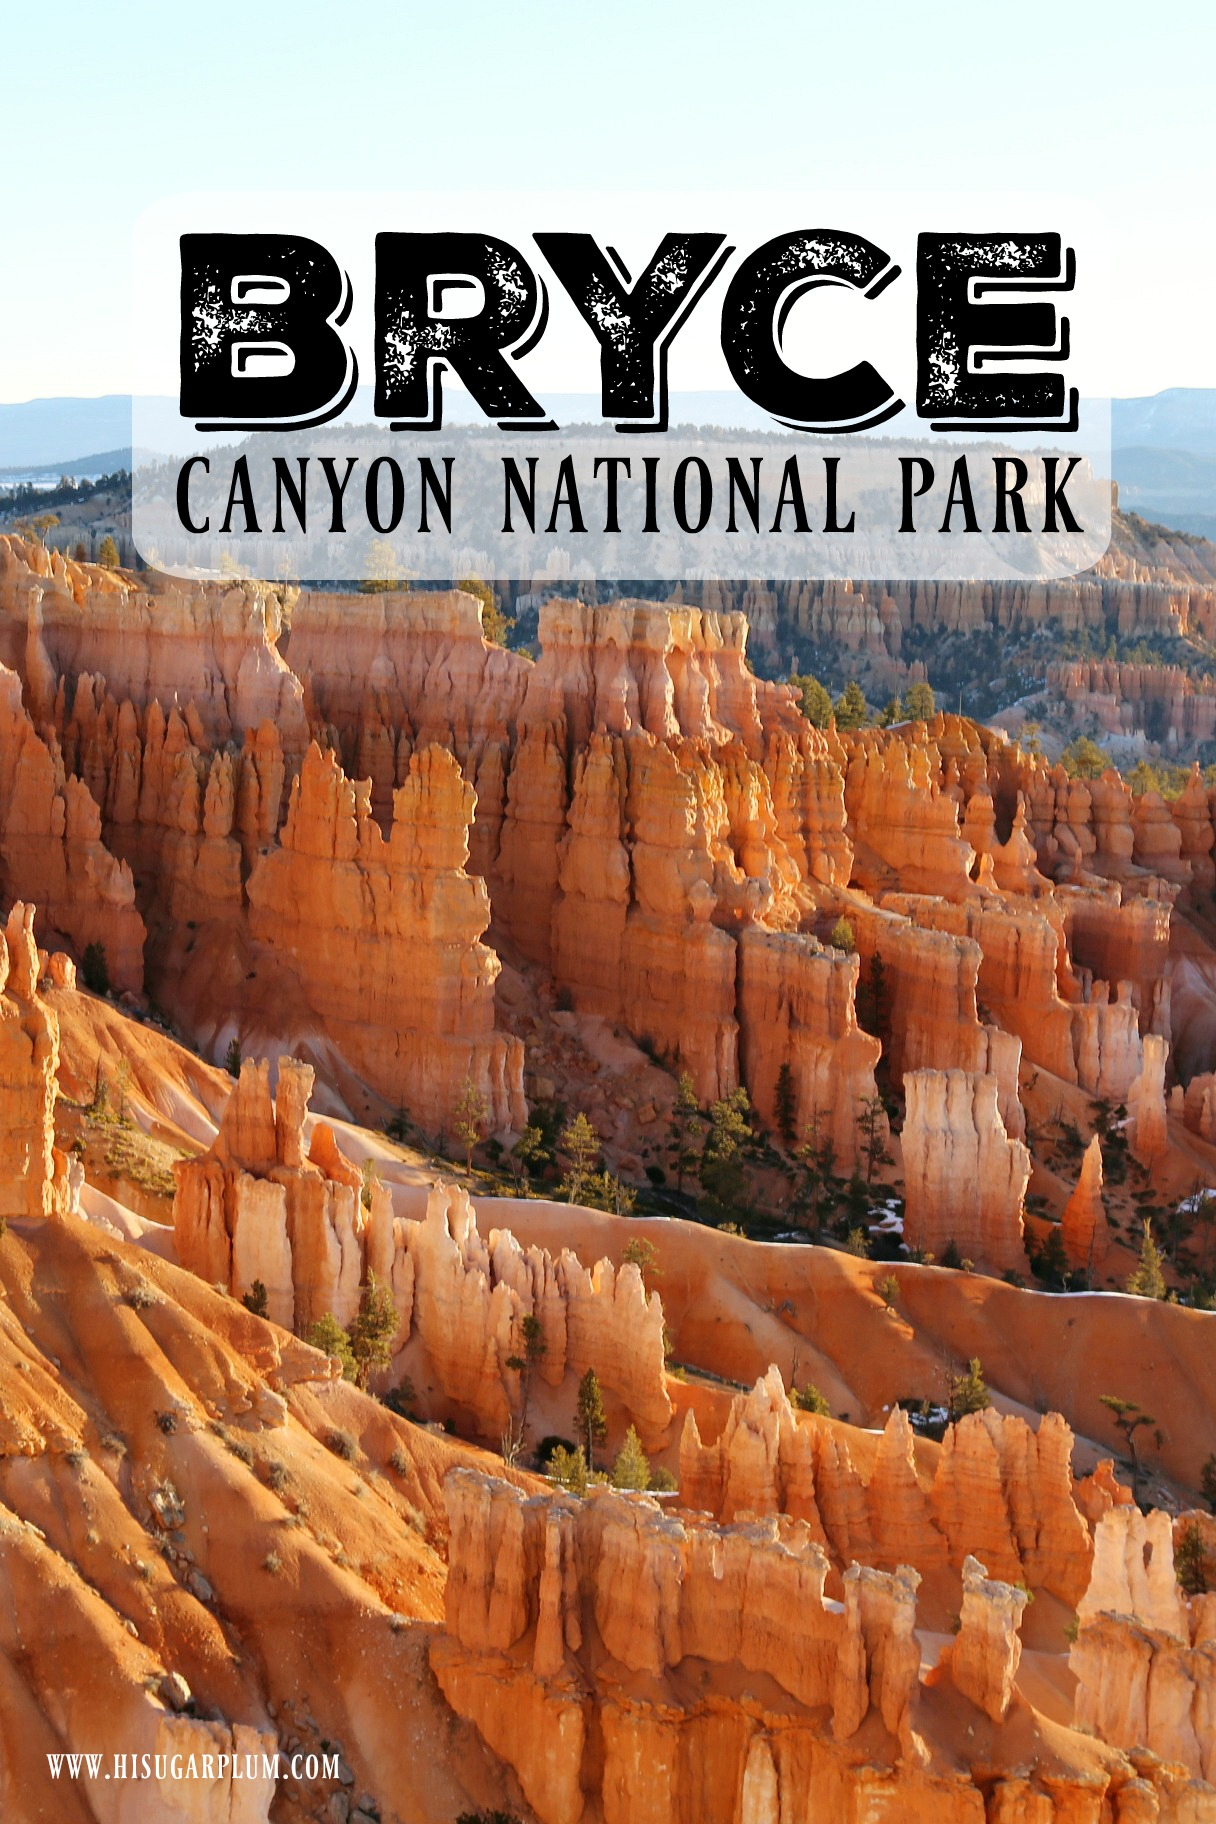 bryce canyon national park sex personals Bryce canyon national park is a perfect ½ day or full-day excursion for a visitor to zion ponderosa and is just 75 minutes drive away learn more about bryce.